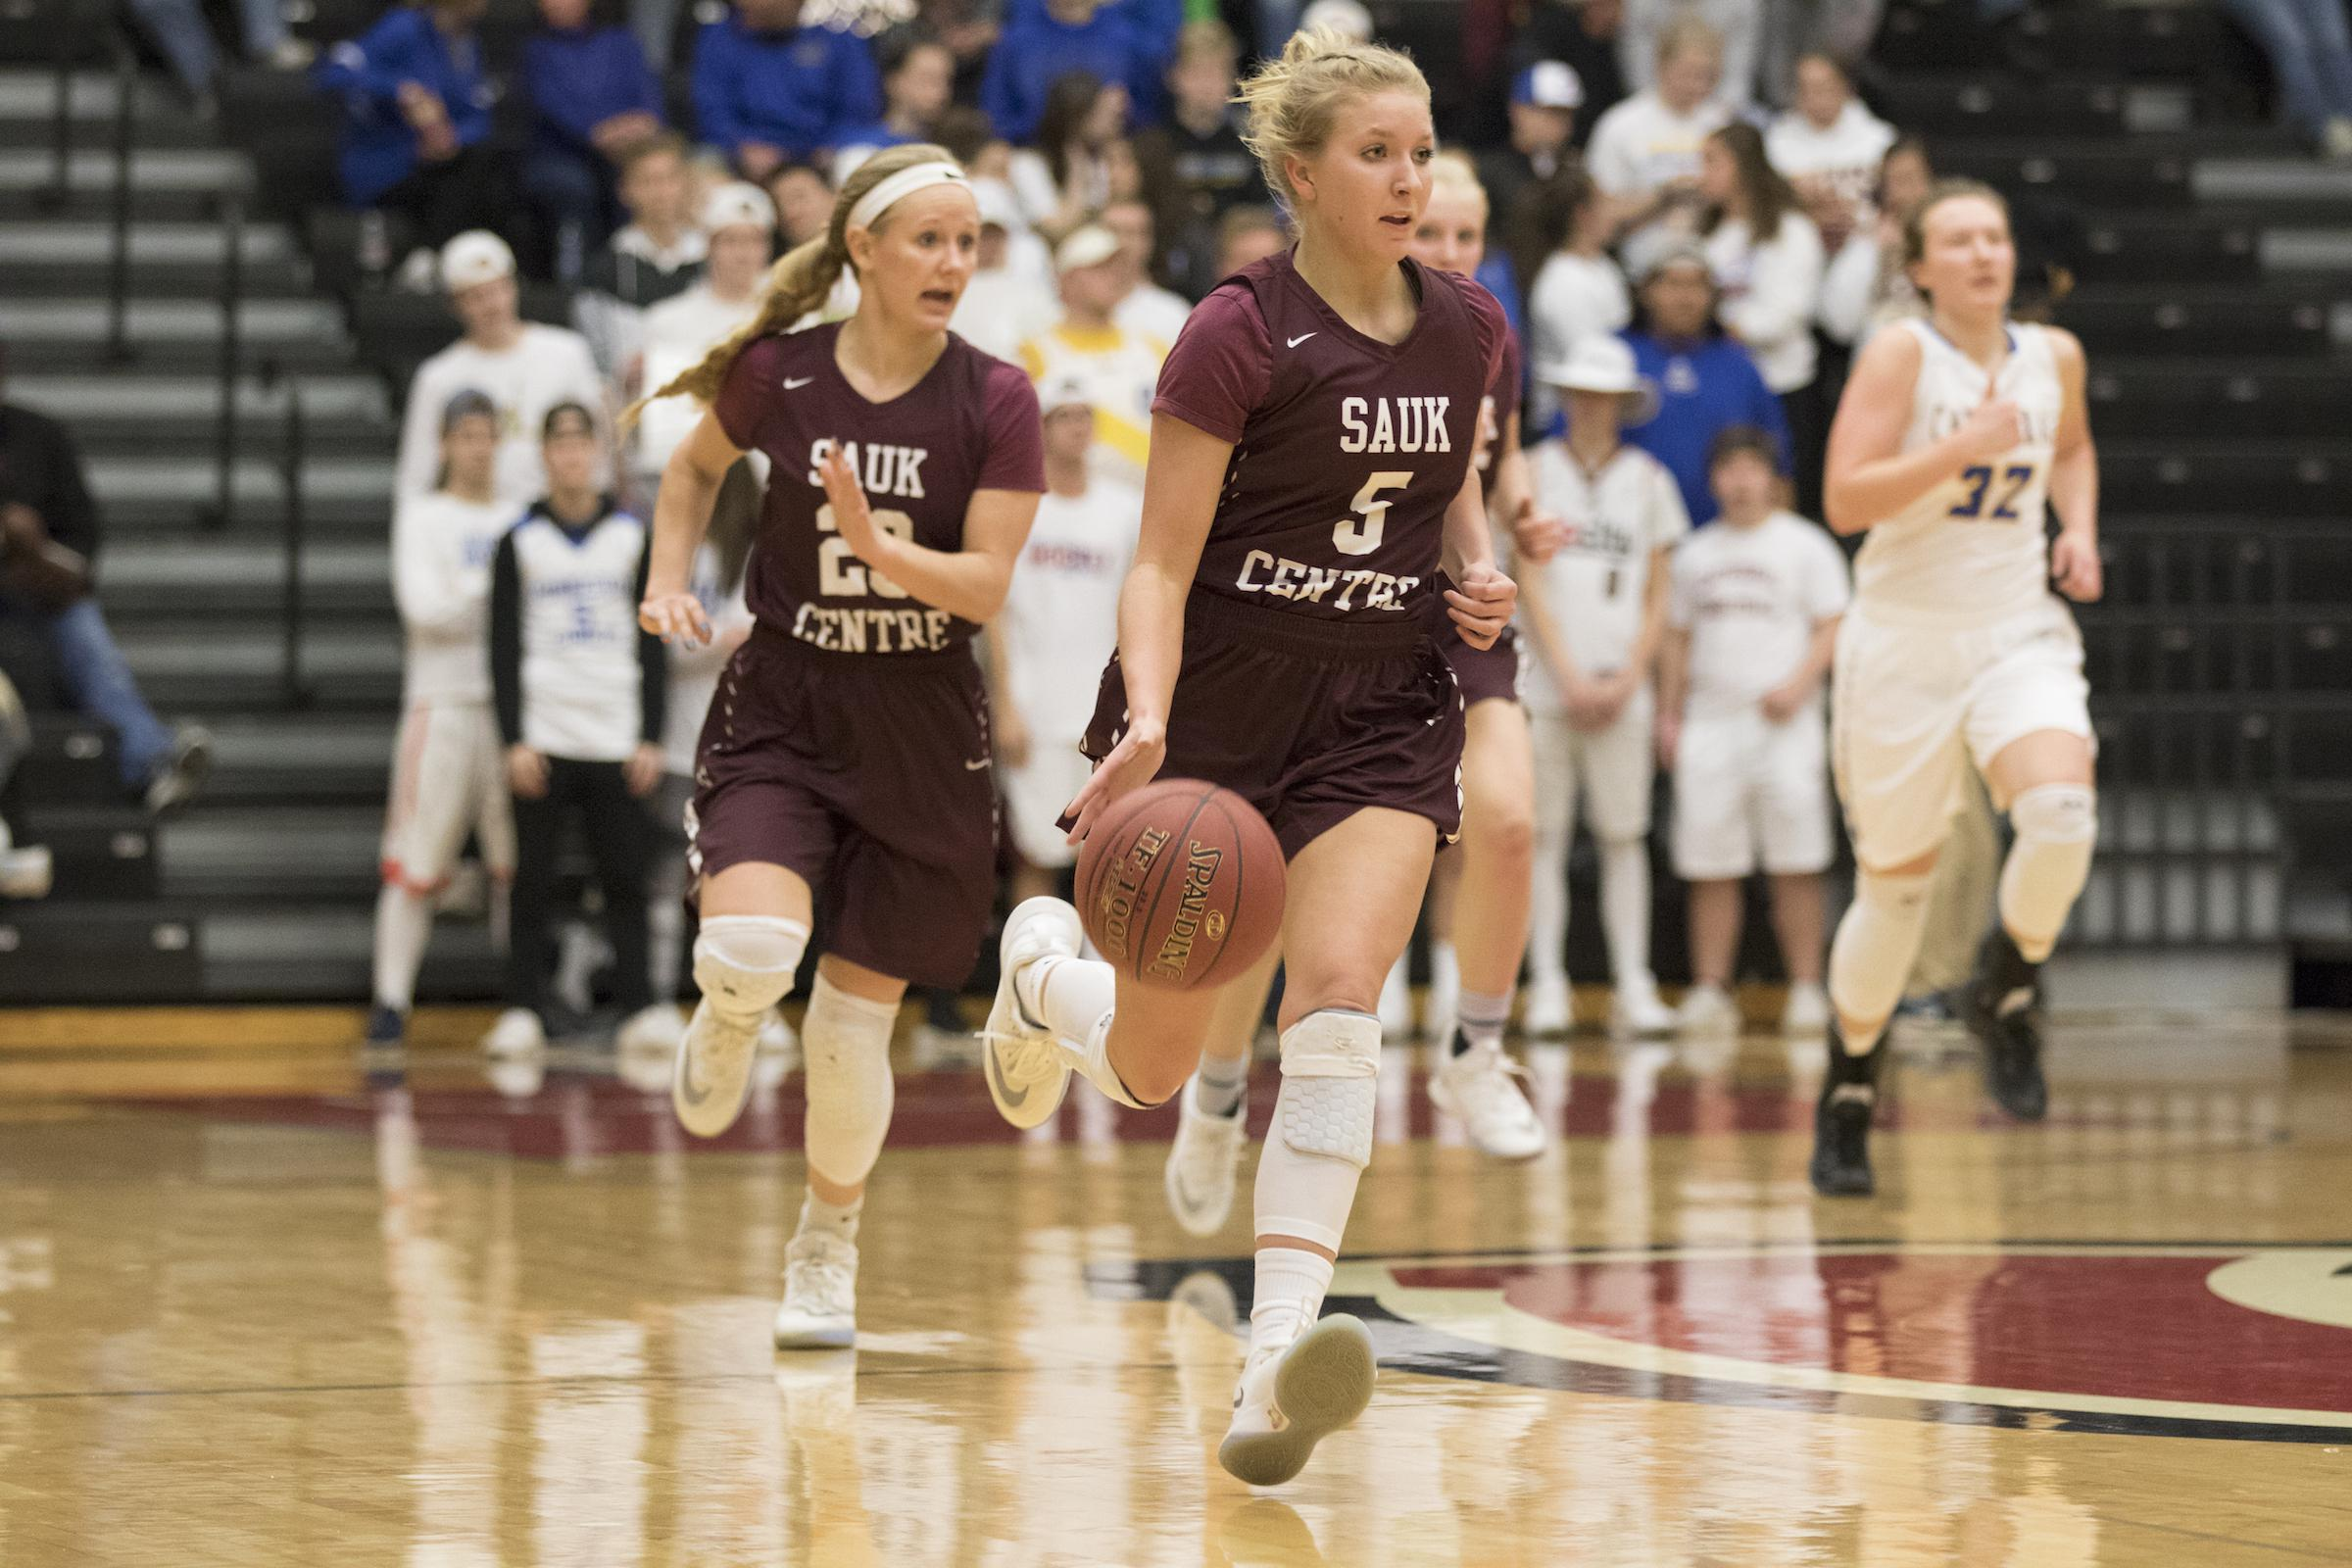 Kelsey Peschel (right) and Maesyn Thiesen (left) in their section final on March 9. They were named two of the Mainstreeters' three all-tournament selections after beating Roseau to win the Class 2A state championship. Photo by Jeff Lawler, SportsEngine